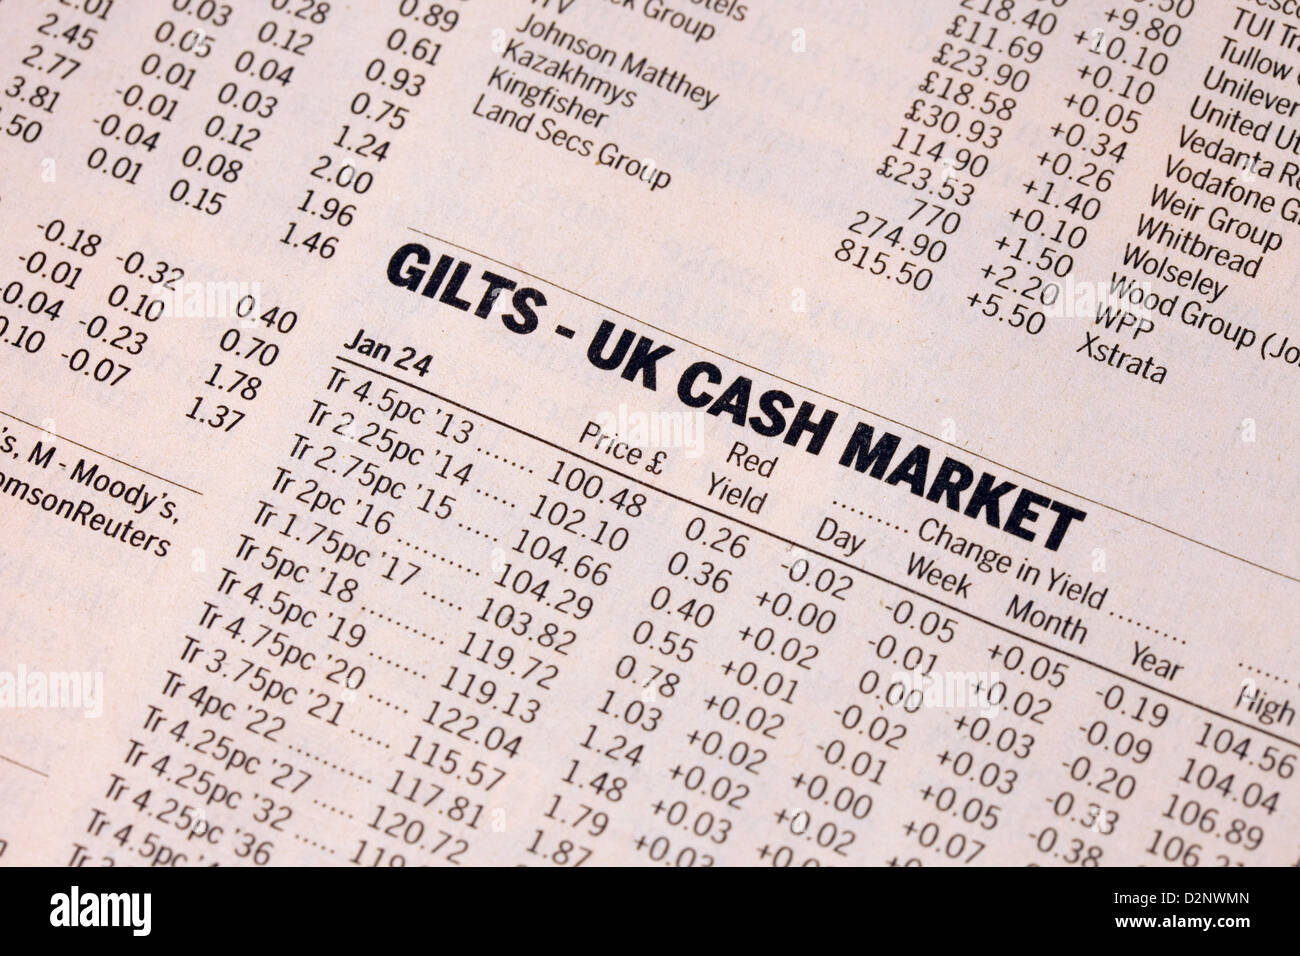 Gilts - UK cash market - values in the Financial Times newspaper, UK - Stock Image